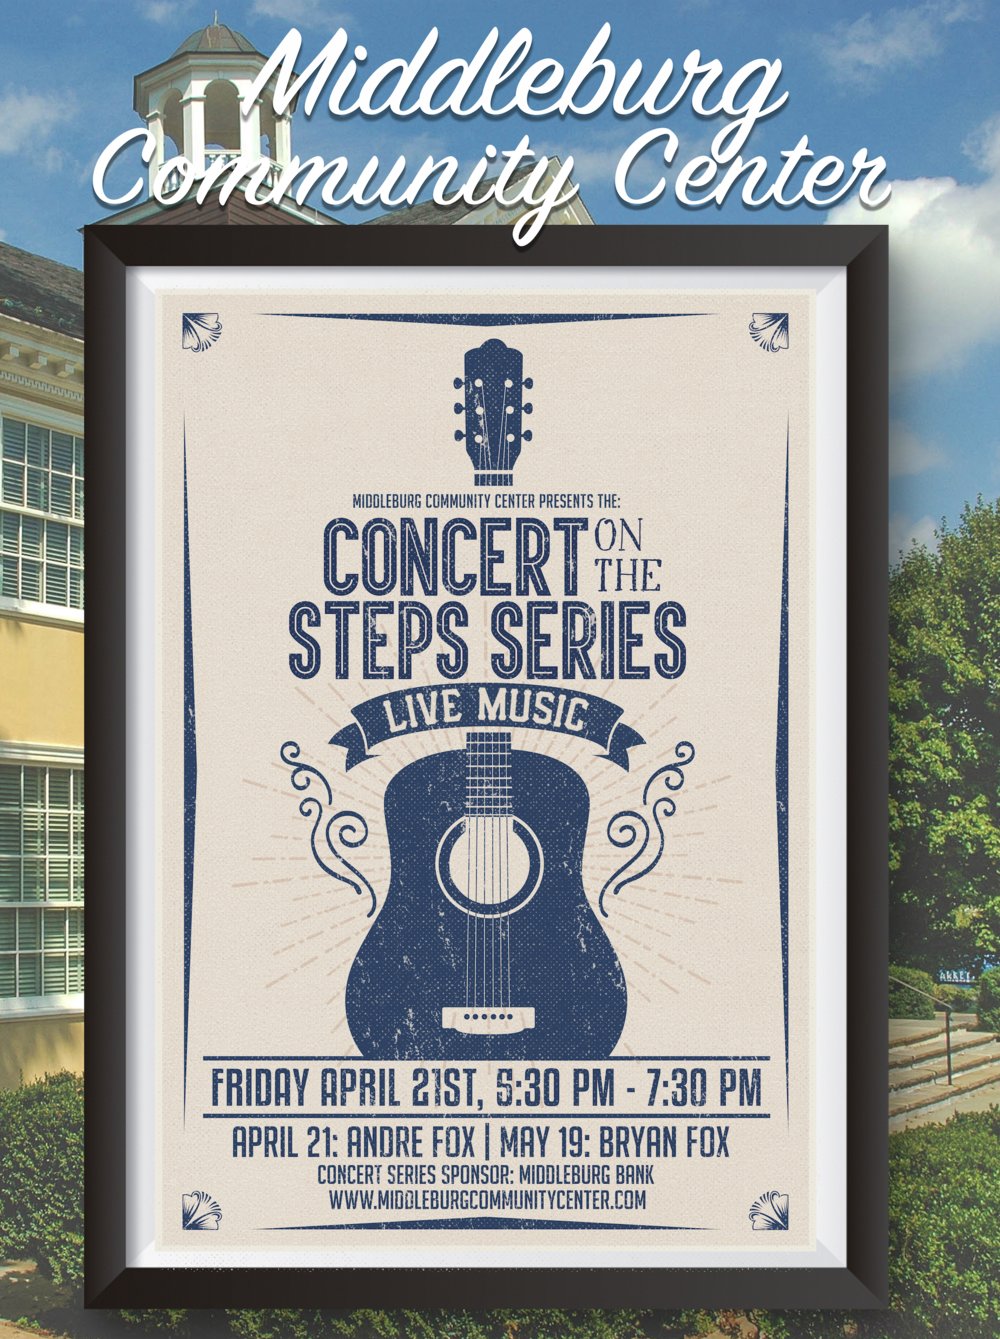 Middleburg Community Center Concert on the Steps 2017 Middleburg VA